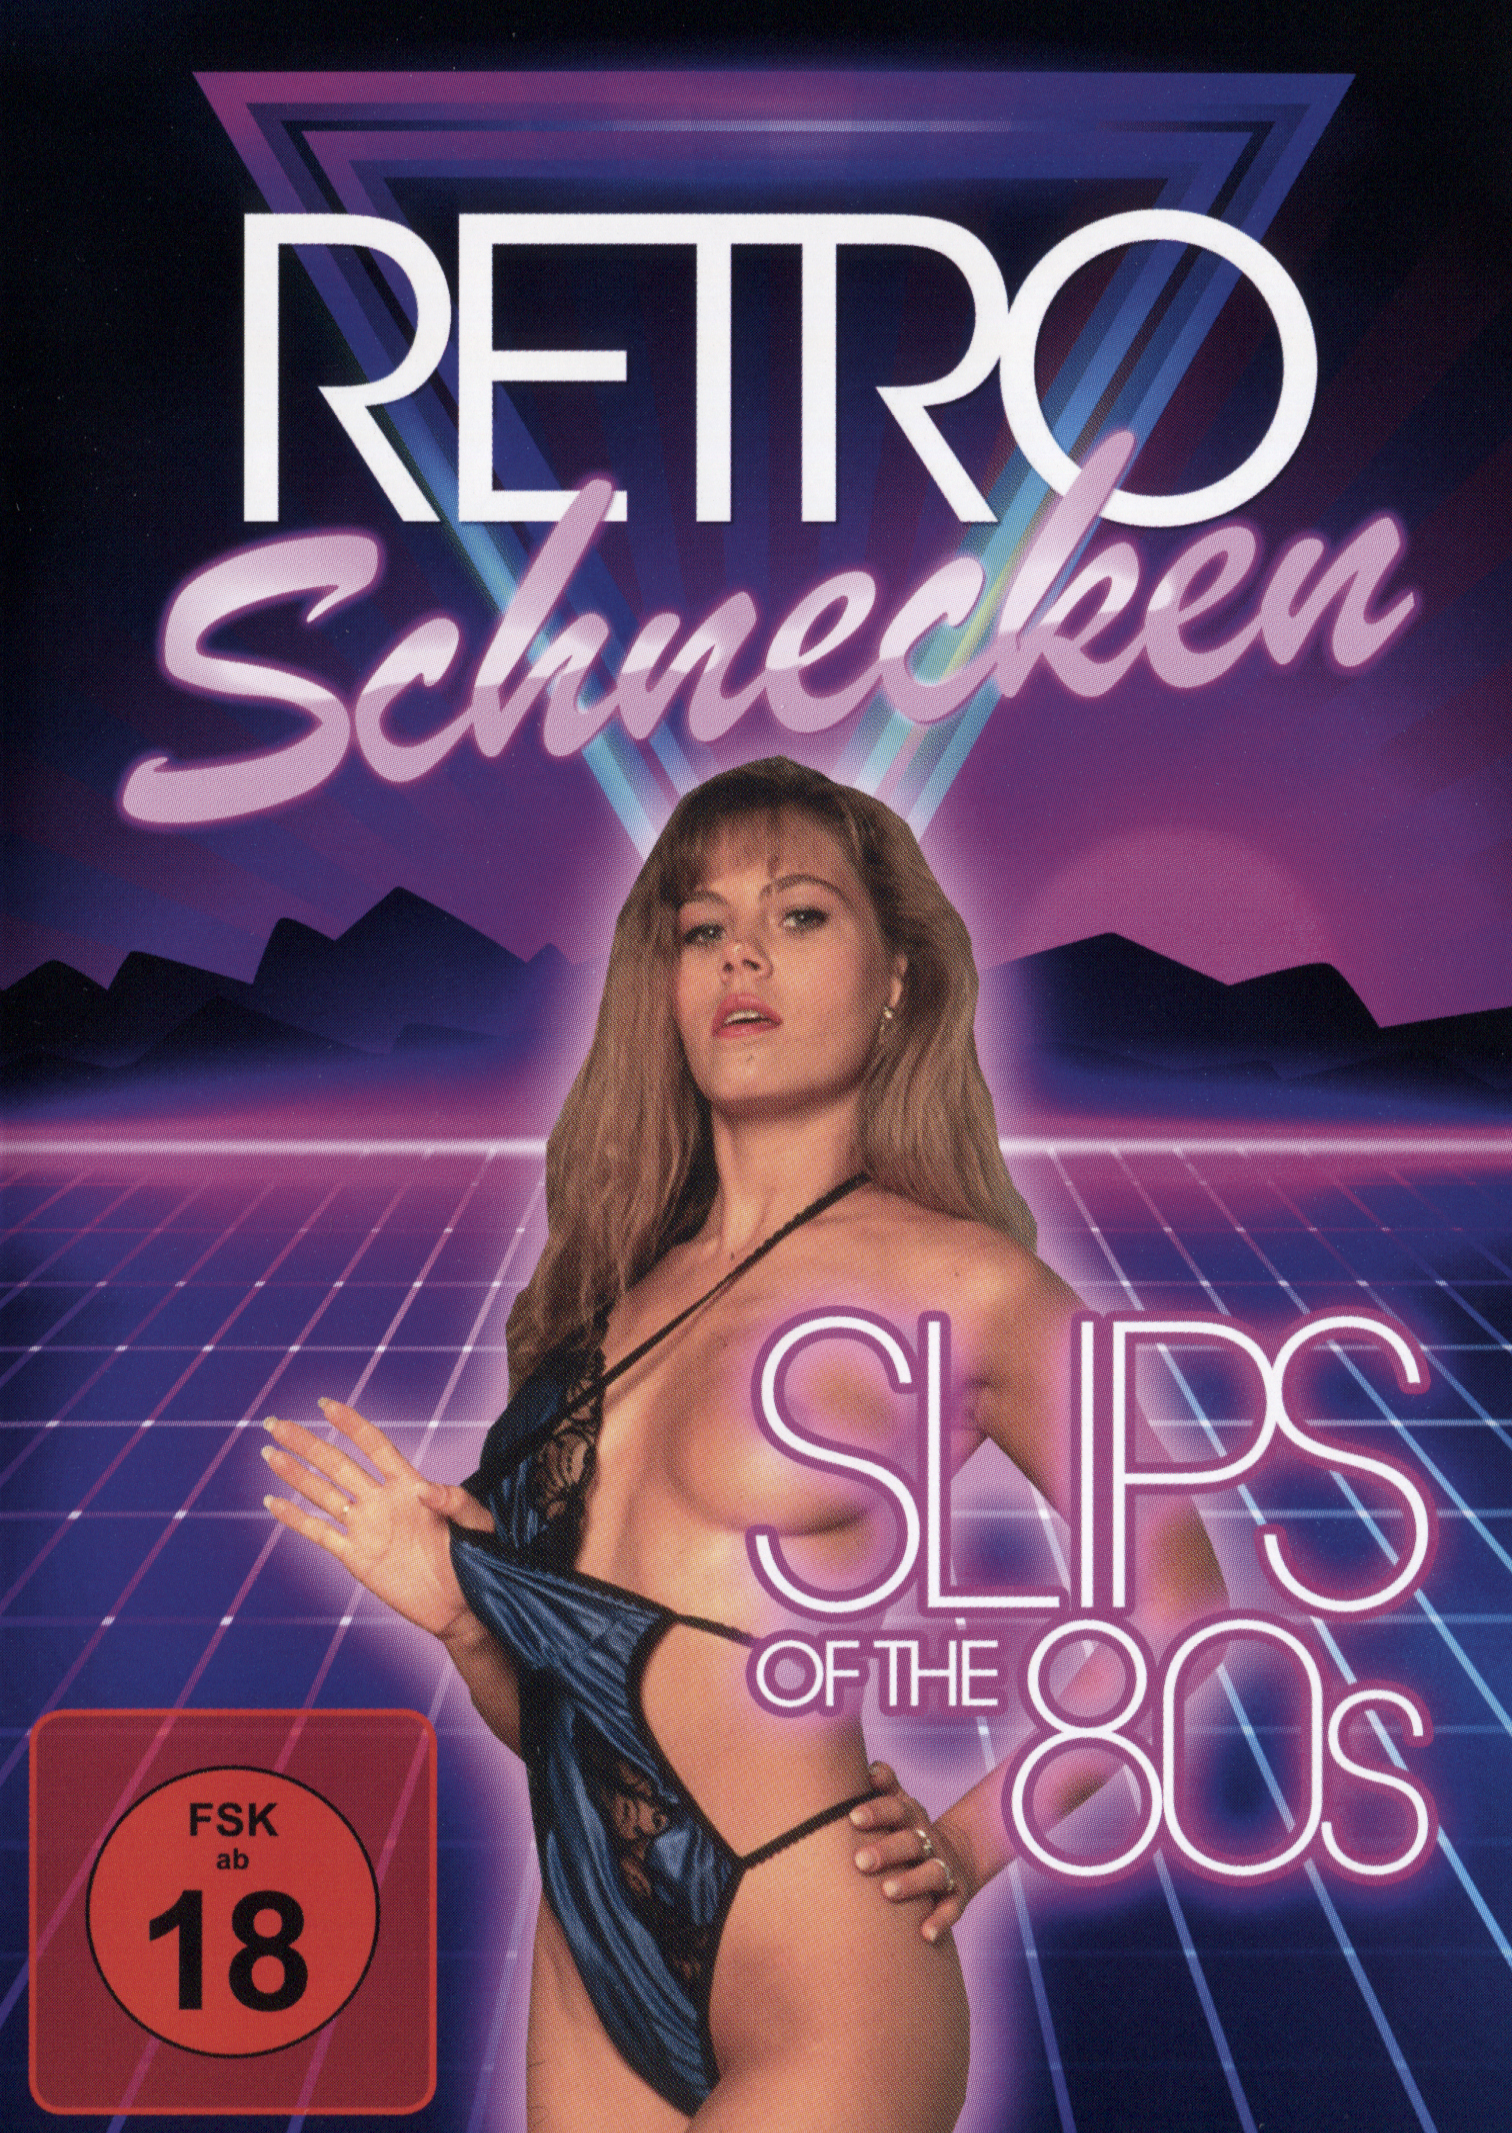 Retroschnecken: Slips of the 80's